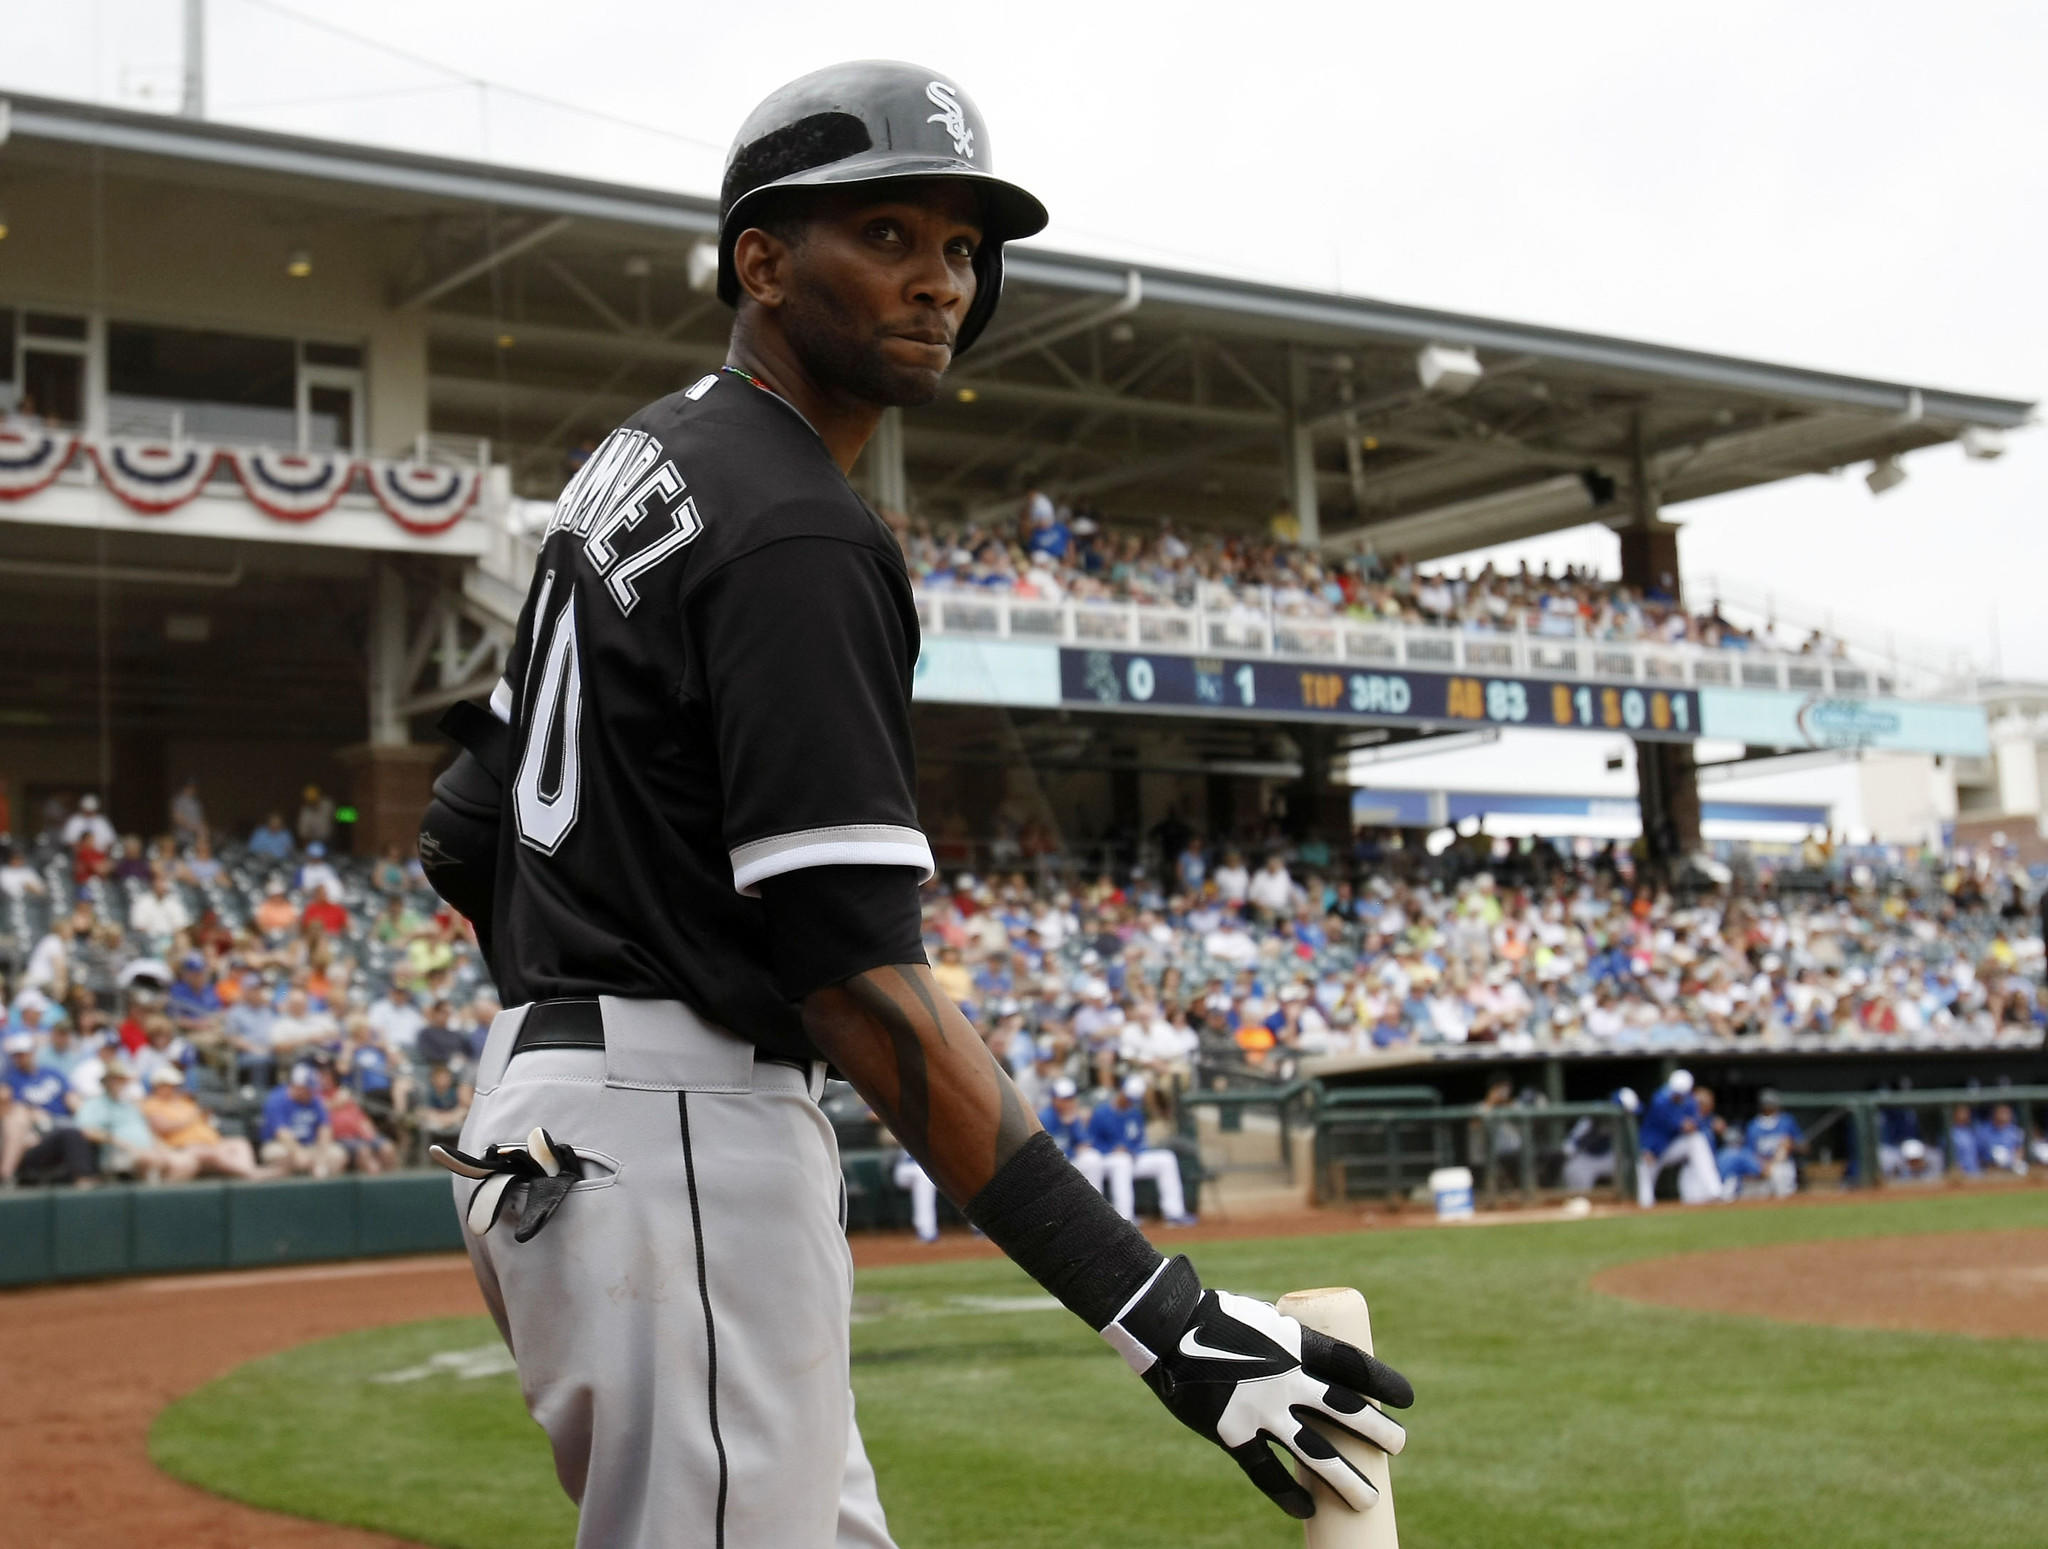 Chicago White Sox shortstop Alexei Ramirez (10) waits on deck against the Kansas City Royals in the third inning at Surprise Stadium.